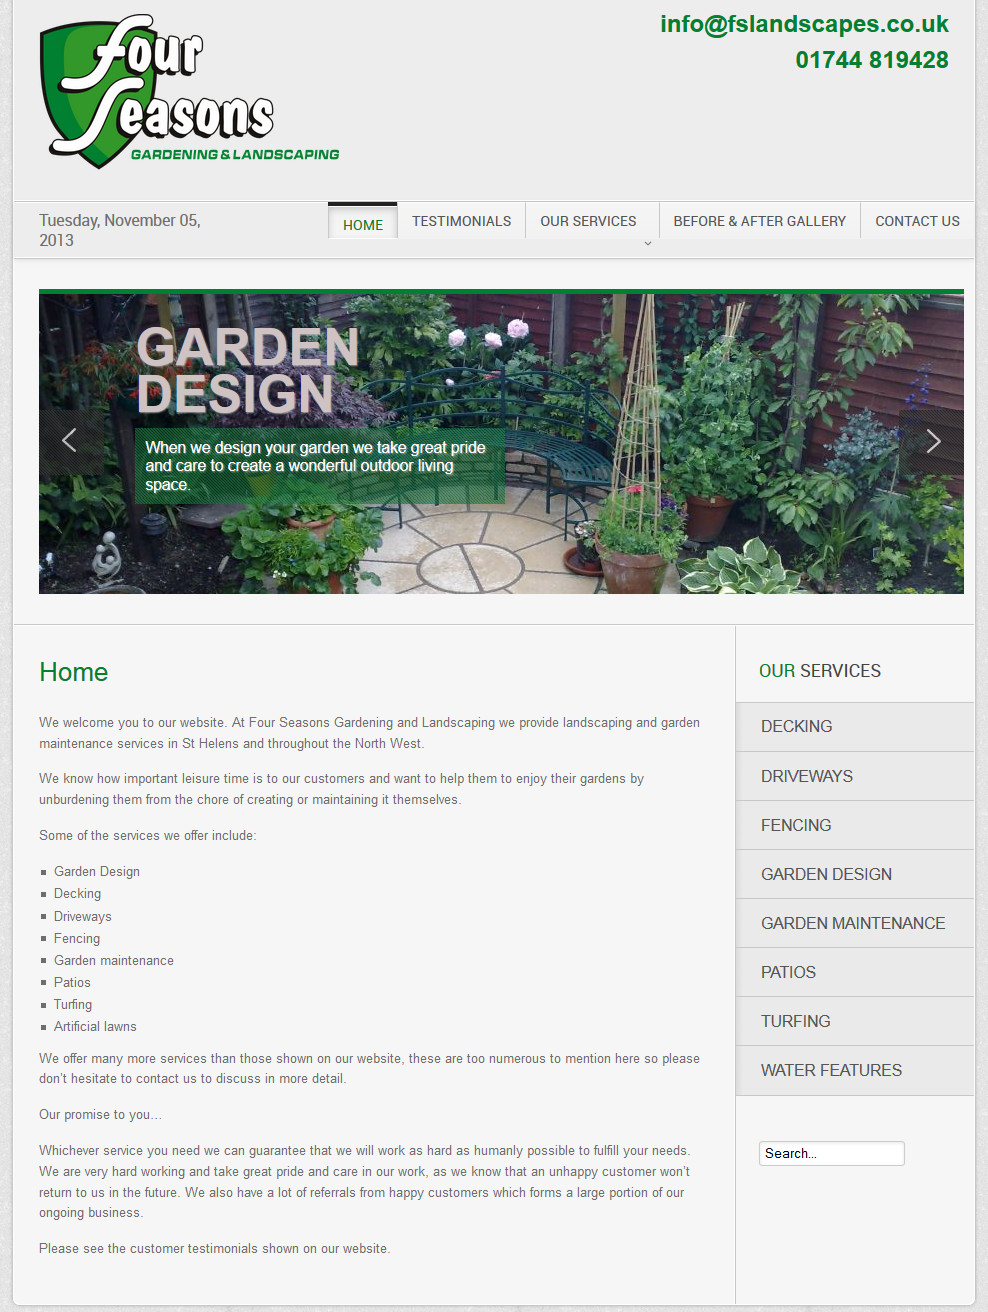 Four Seasons Landscaping And Gardening Web Design St Helens